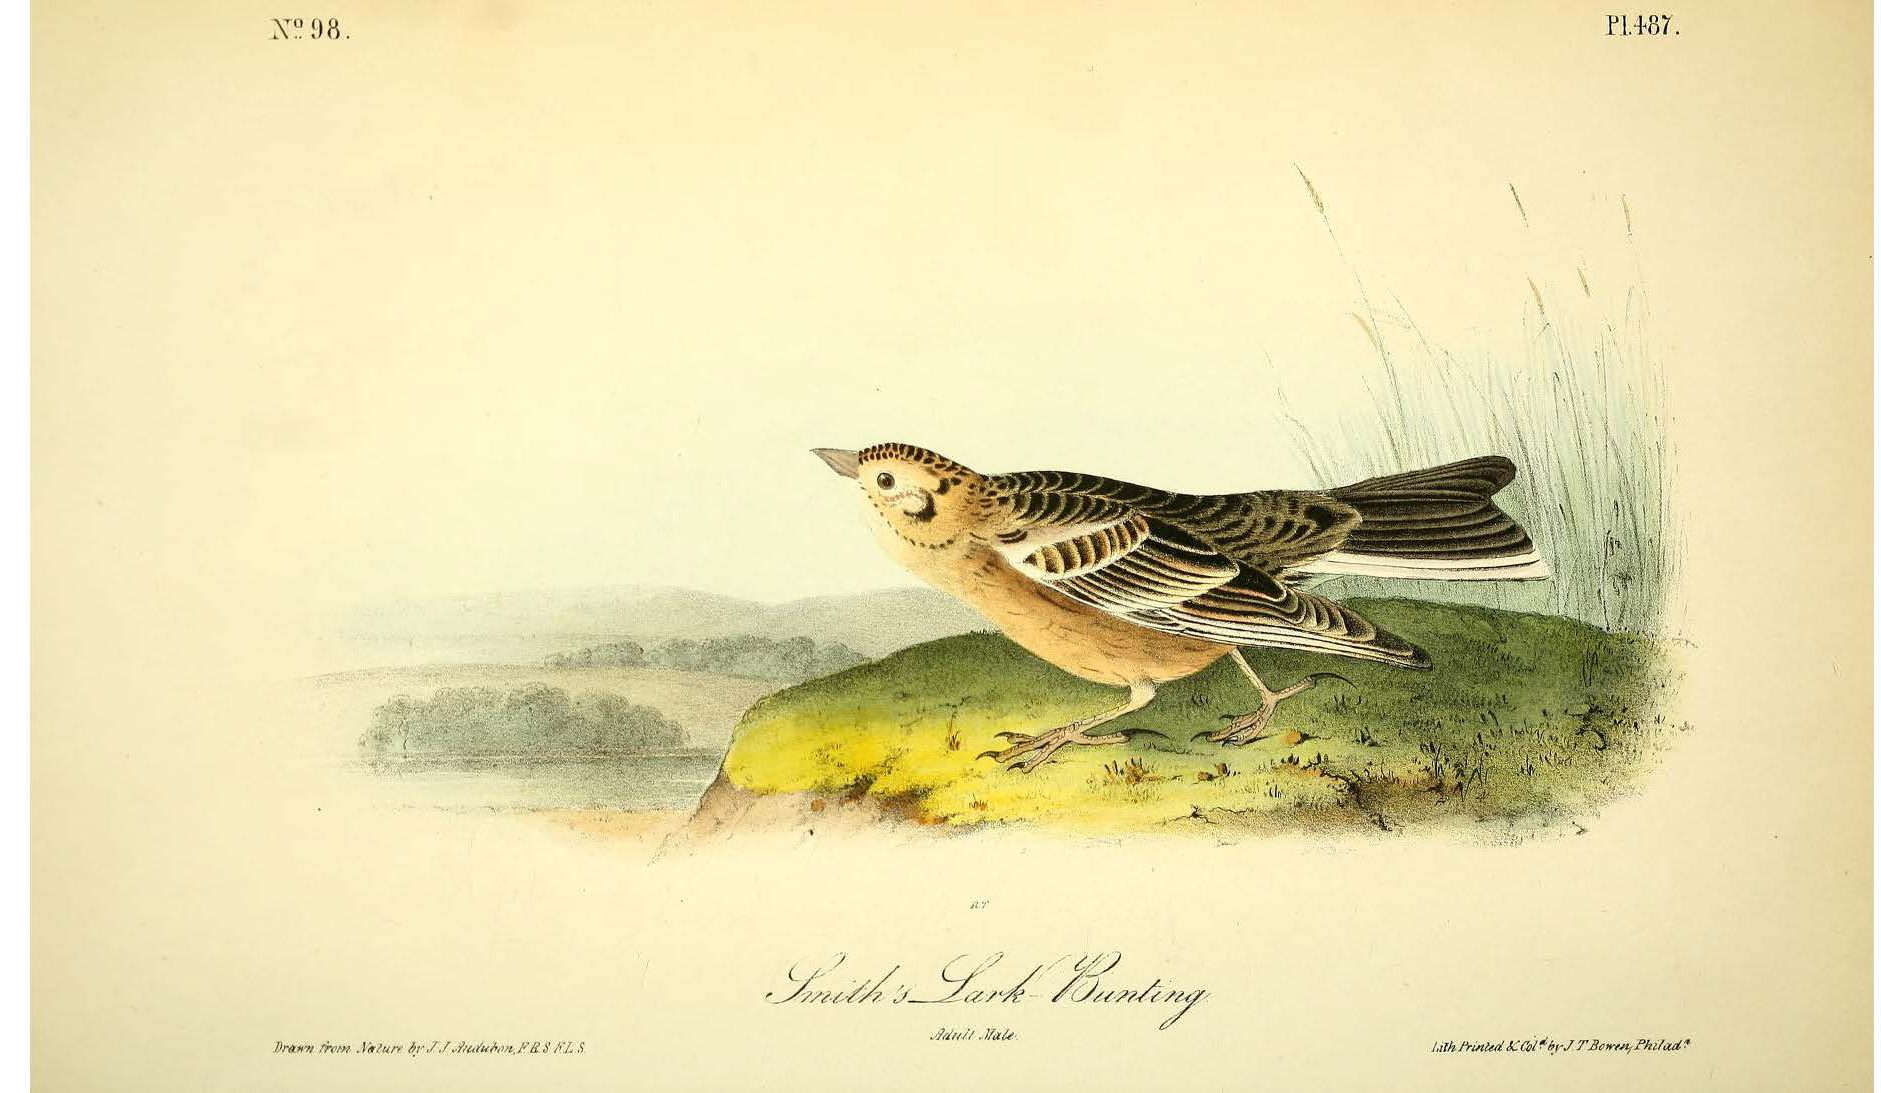 Colored drawing of a bird sitting on a grassy ledge, bird has black wings and a light brown belly